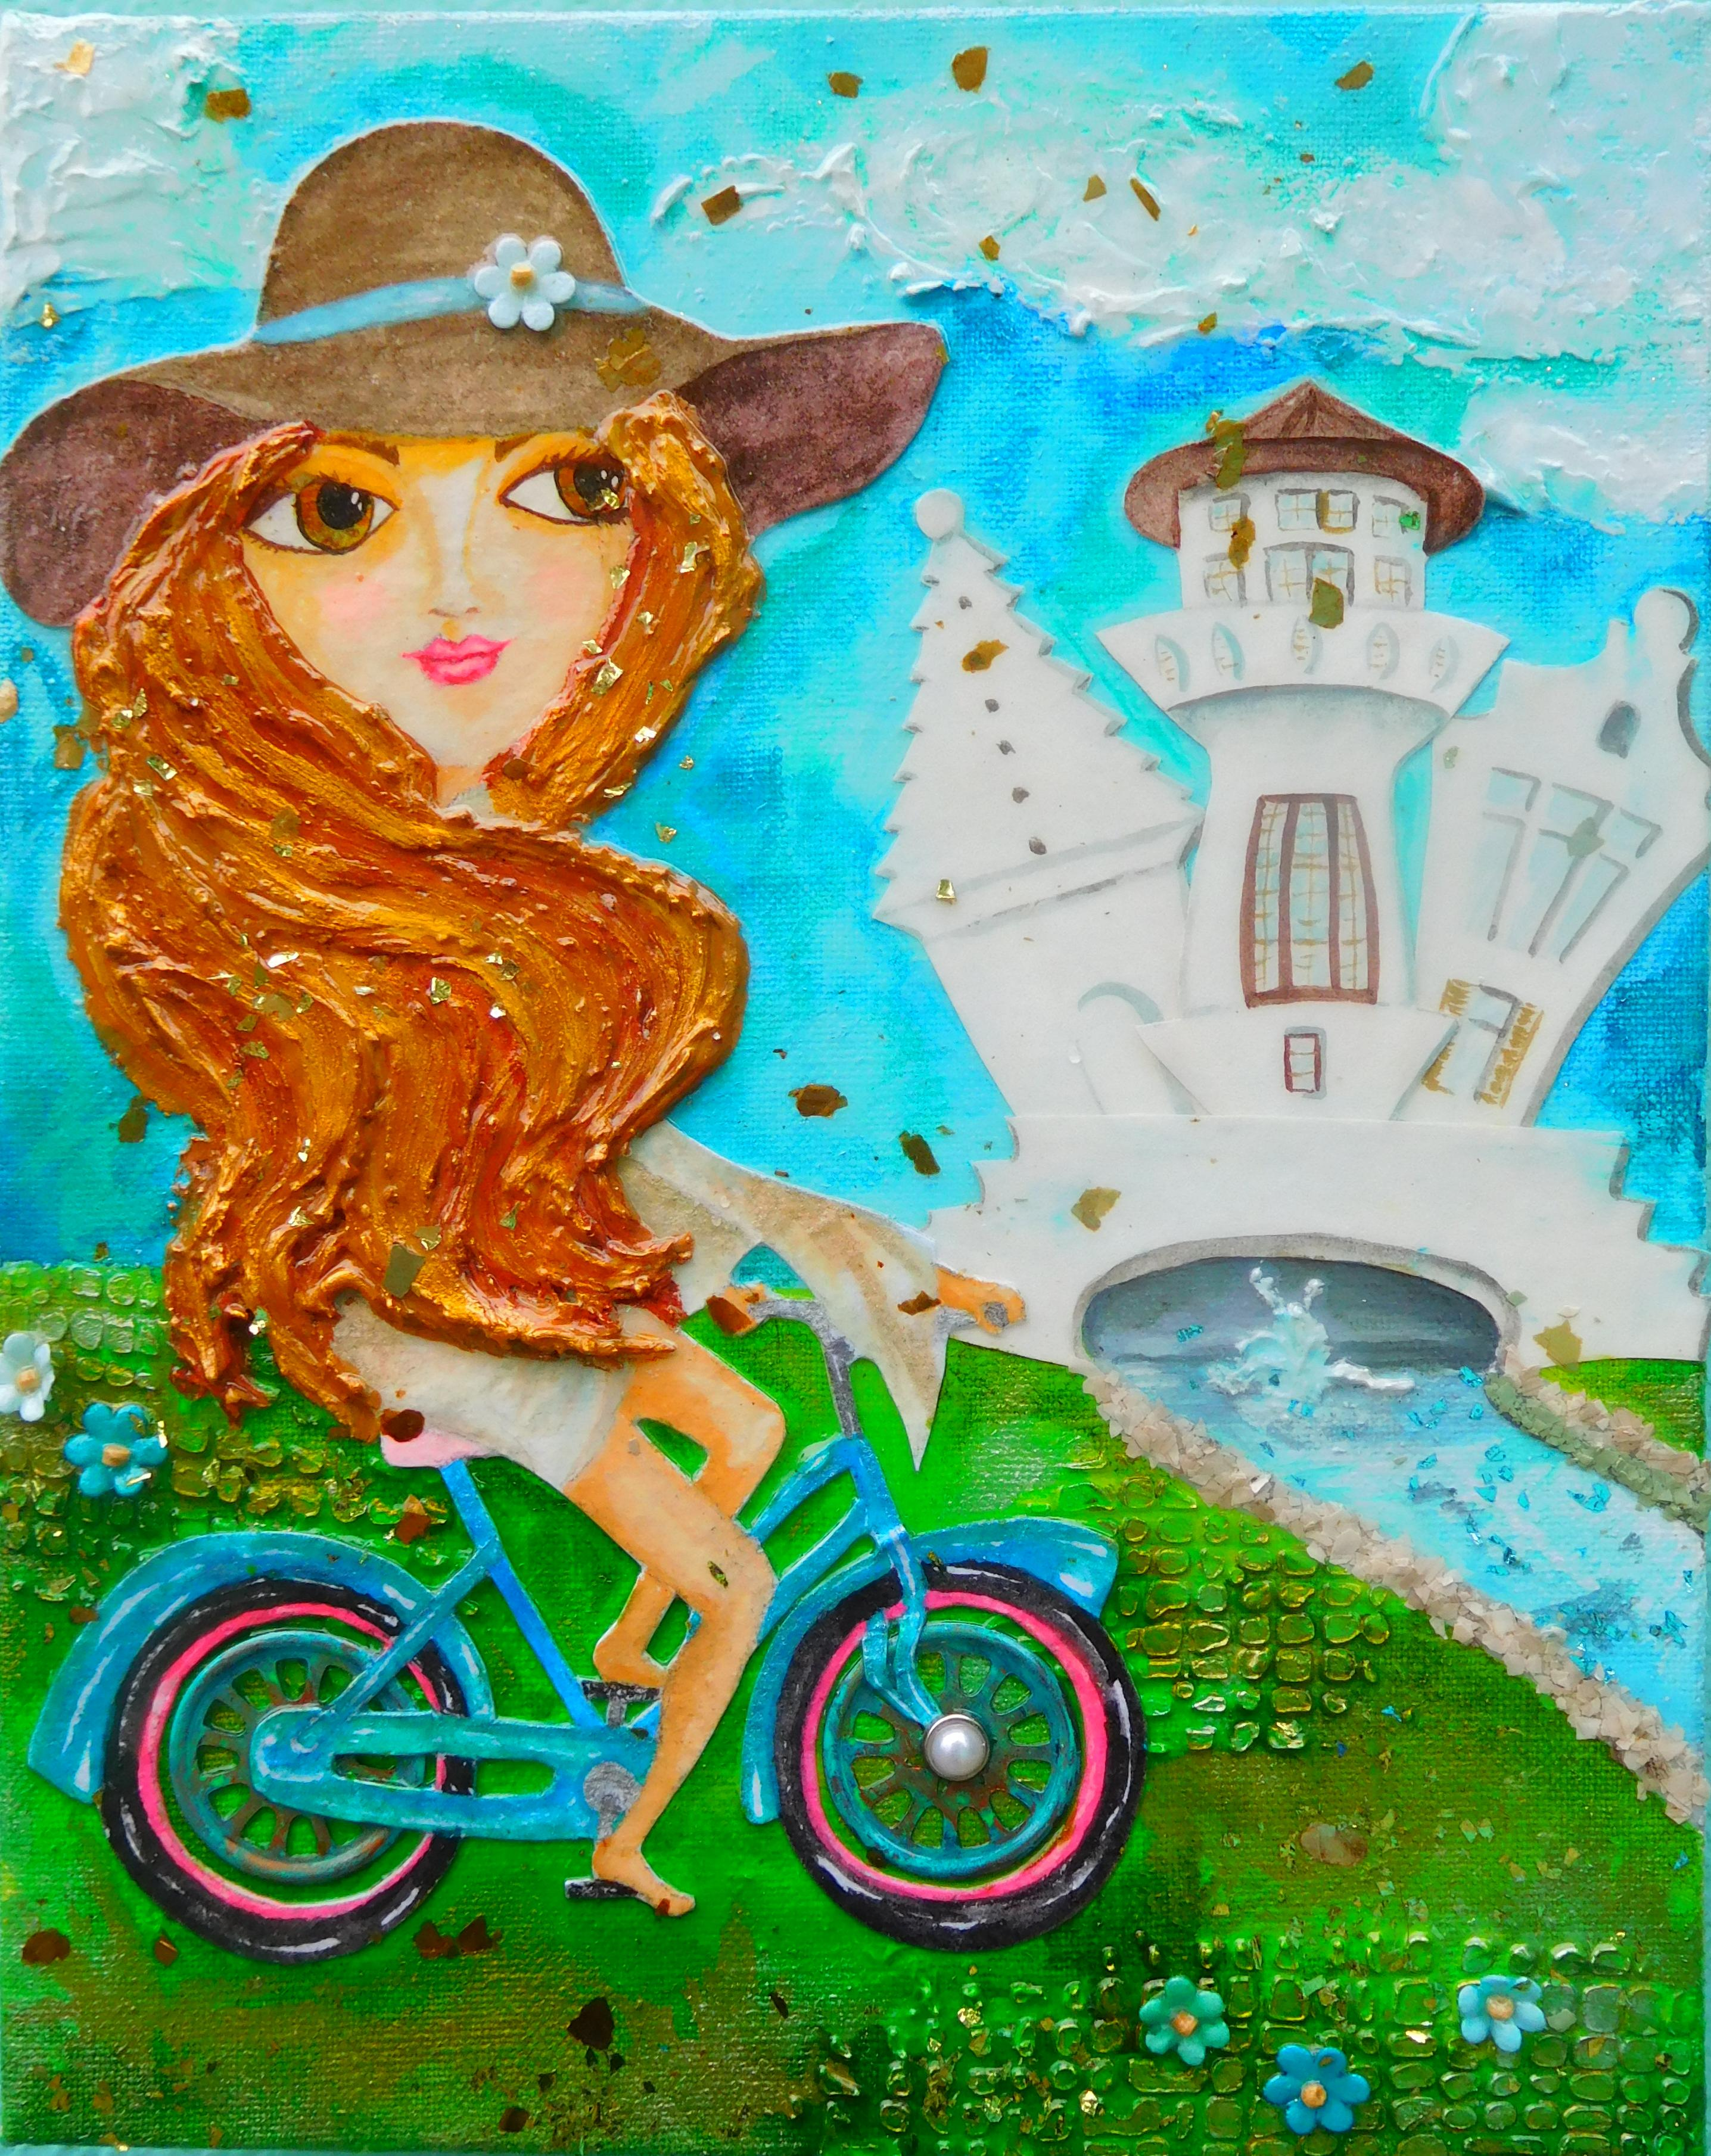 Biking Alys Beach, 8X10 $120